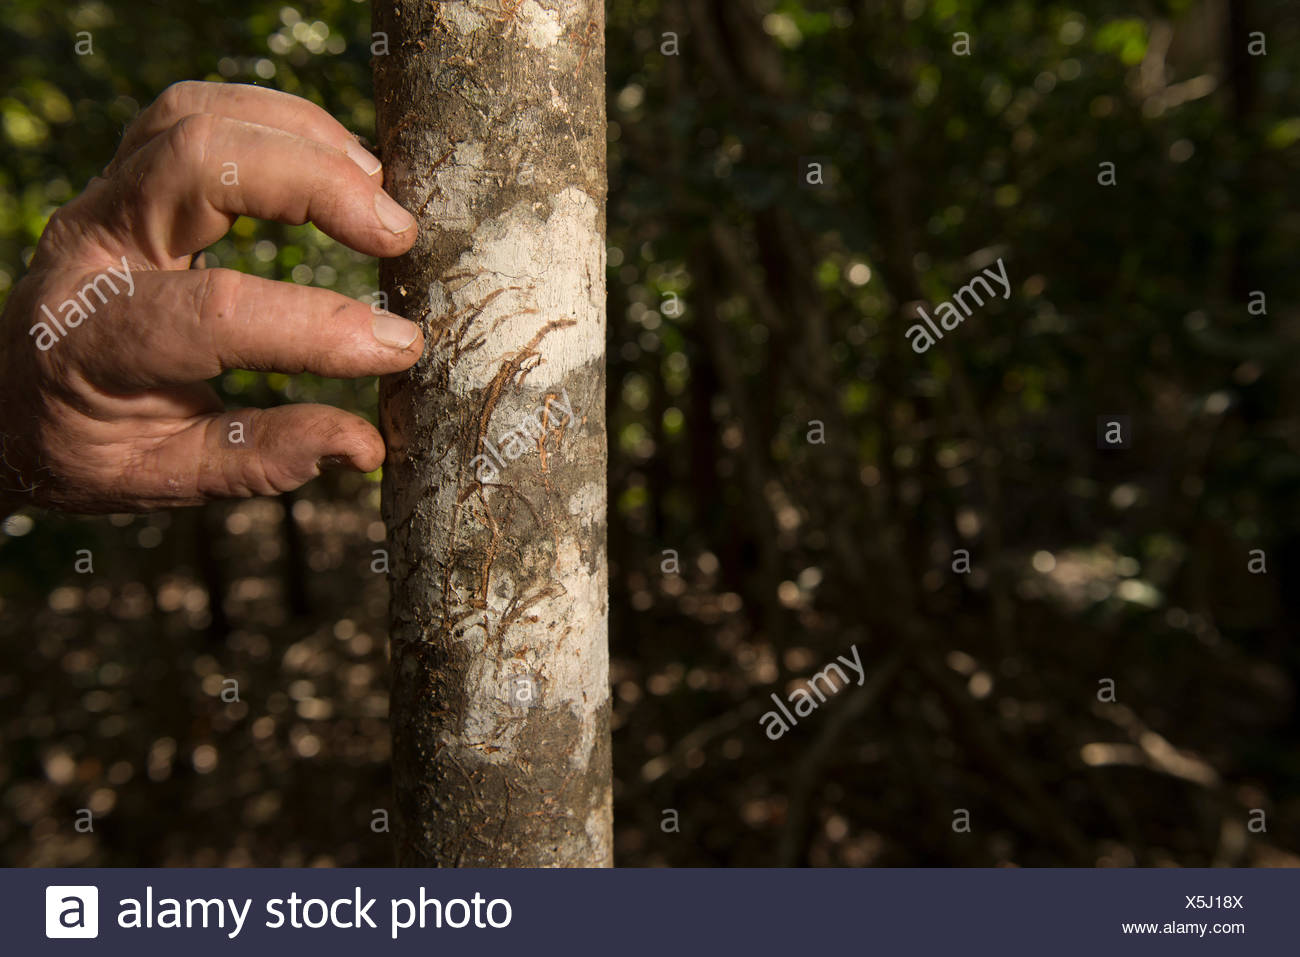 Claw Marks Stock Photos & Claw Marks Stock Images - Alamy